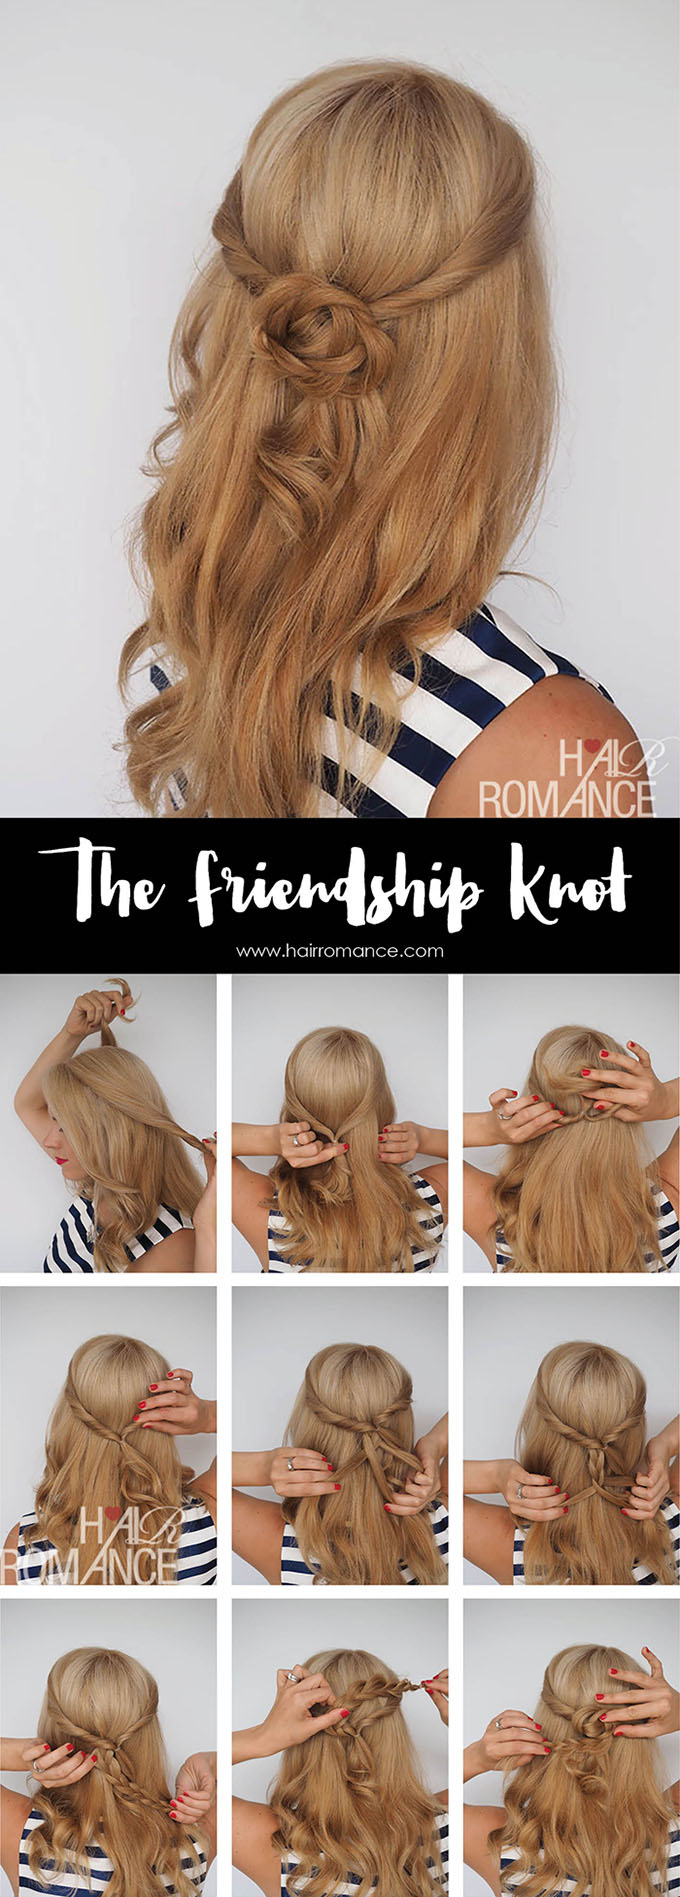 Hair Romance - Friendship Knot hair tutorial